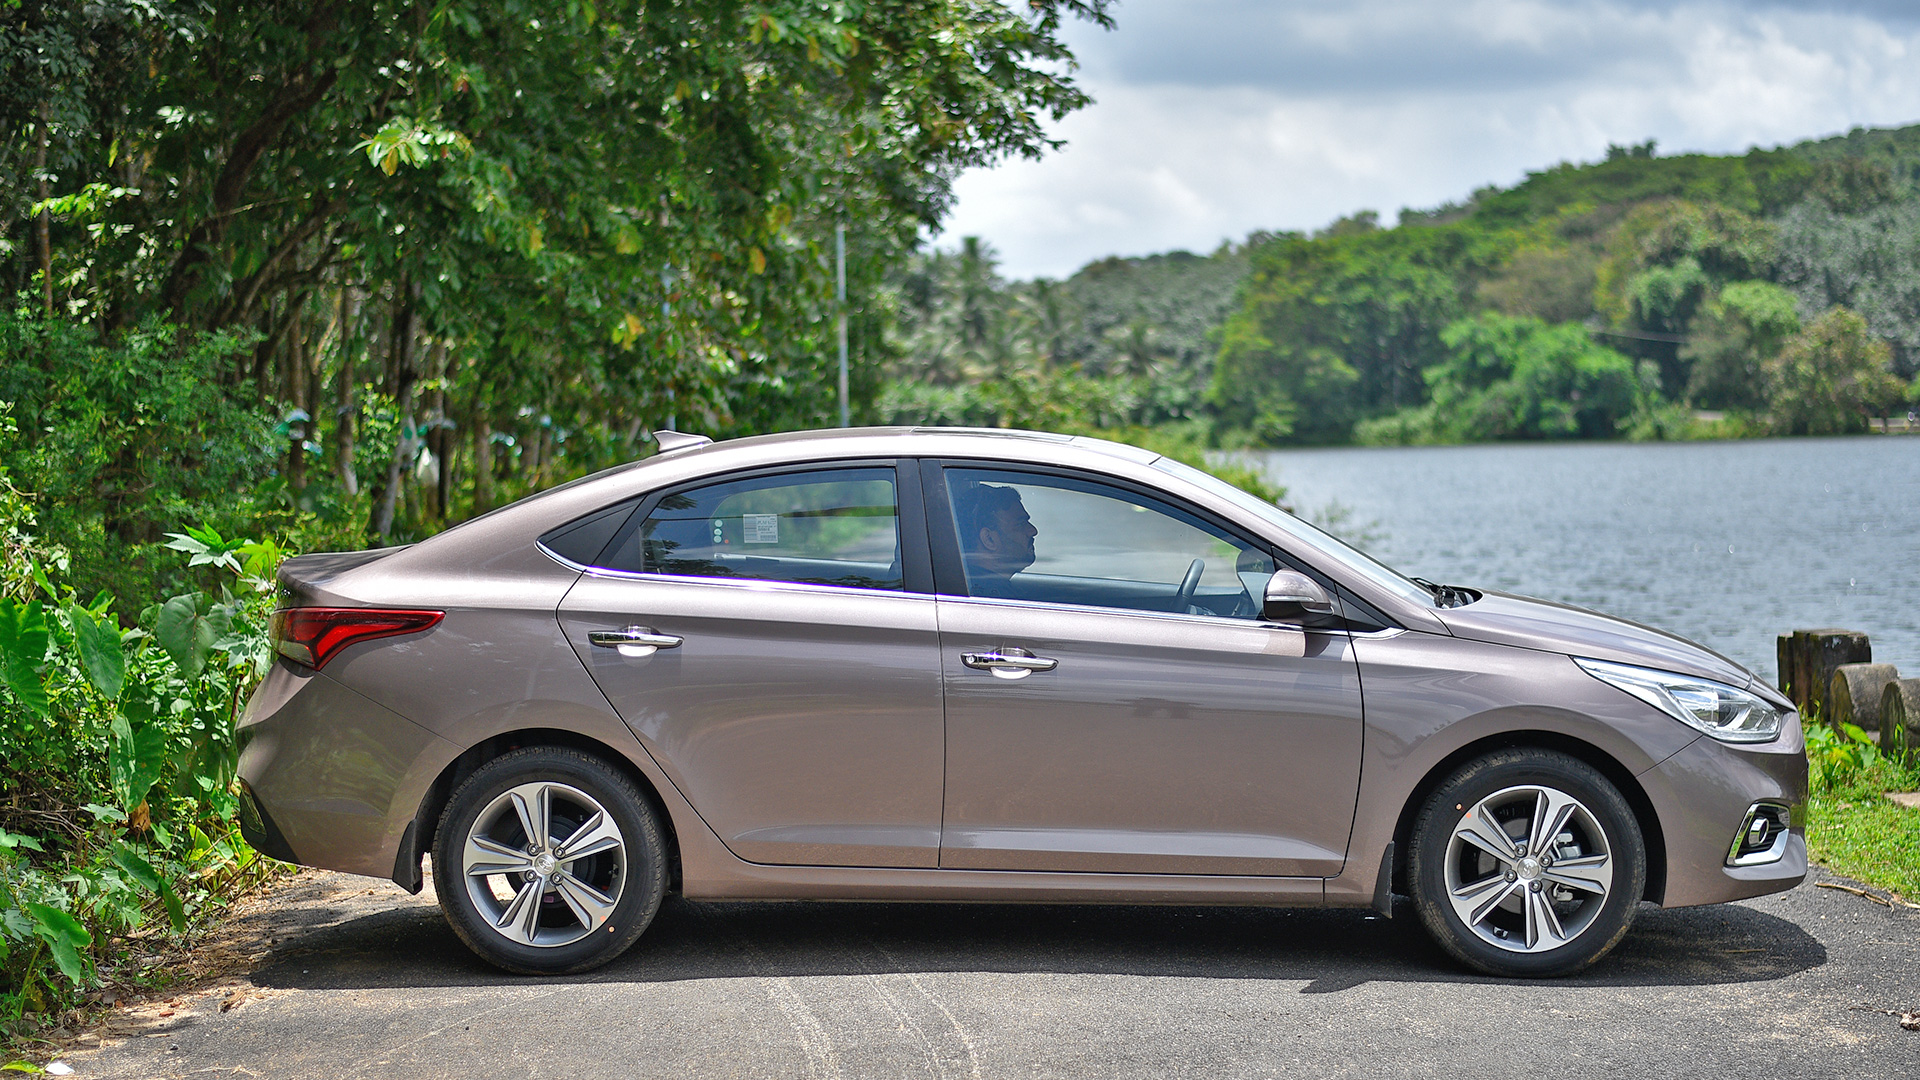 Hyundai Accent Hatchback 2017 Review >> 2018 Hyundai Verna - New Car Release Date and Review 2018 | mygirlfriendscloset